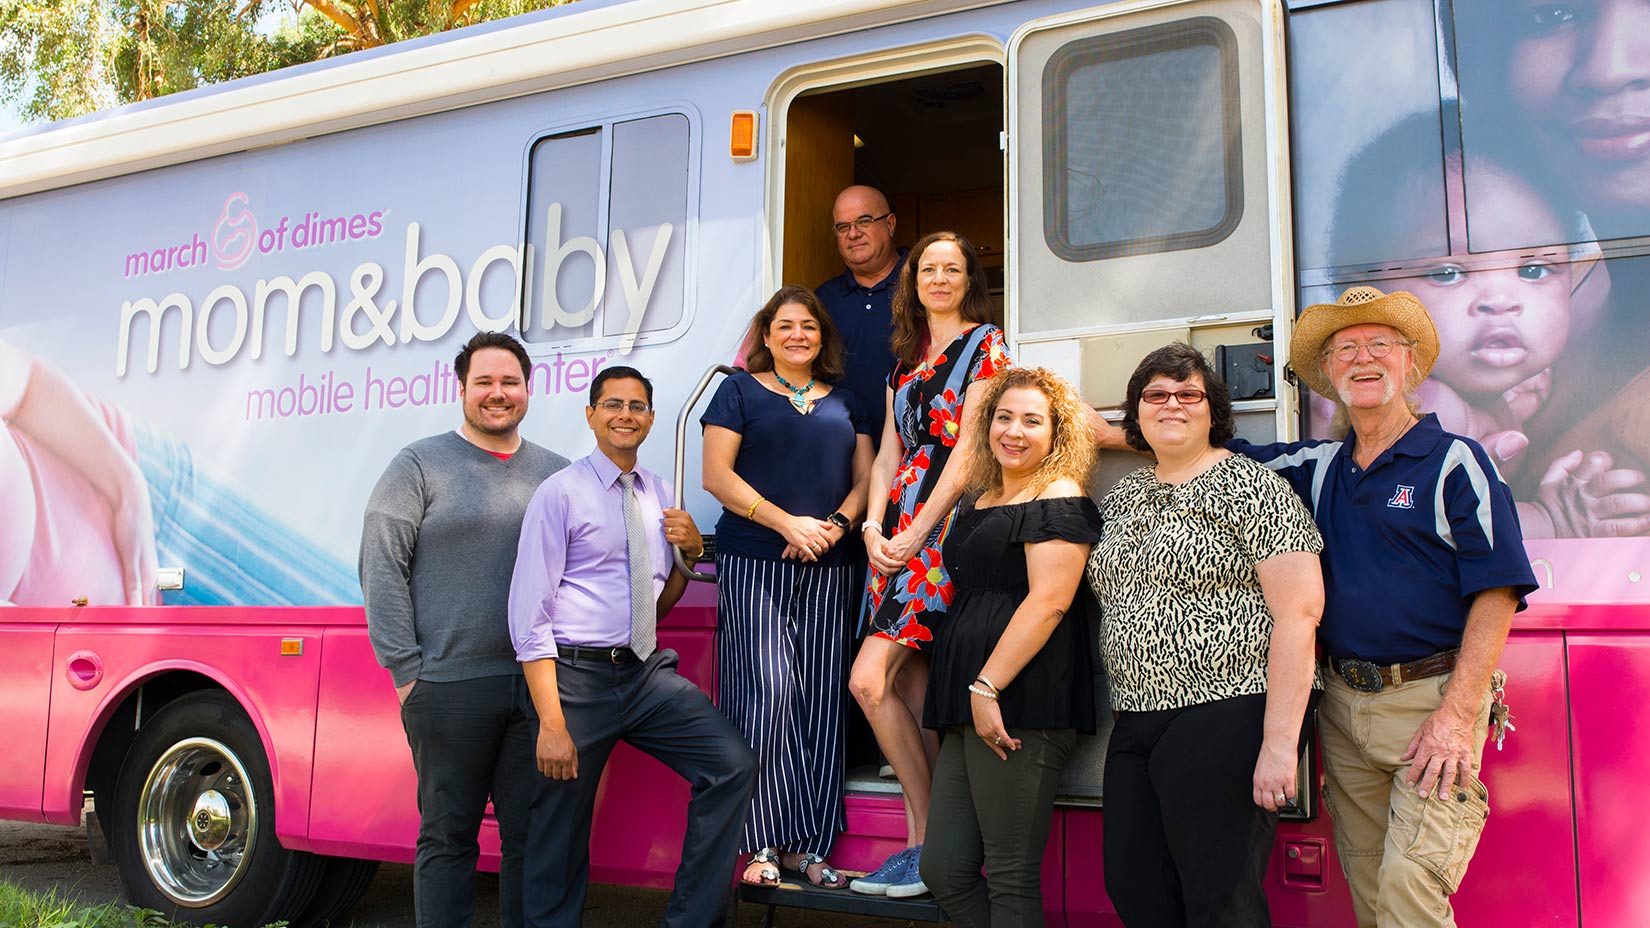 The Mobile Health clinic team (from left): Senior Program Coordinator Patrick Rivers, Medical Director Ravi Grivois-Shah, Community Health Educator Nury Stemple, driver Jesus Marquez, nurse practitioner Elizabeth Knight, medical assistant Edna Rodriguez, nurse practitioner Angela Brown and driver Greg Loring.